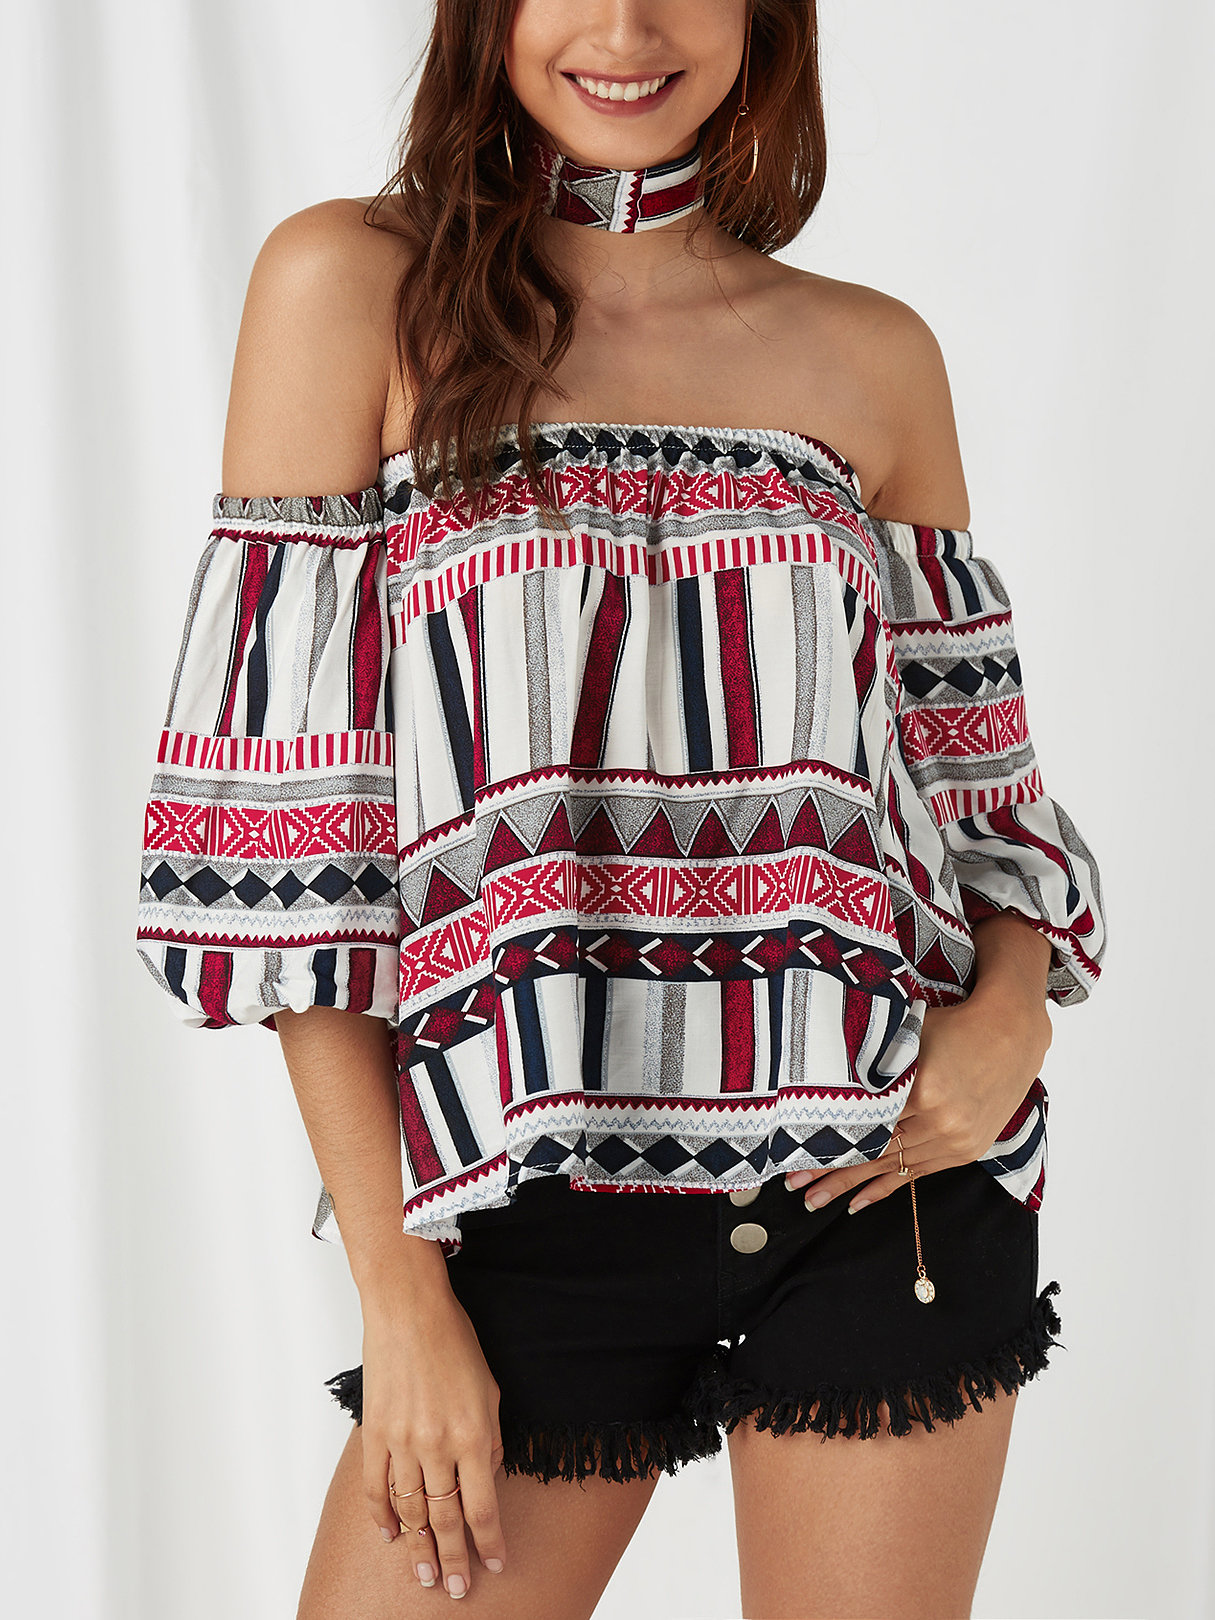 White Geometrical Off The Shoulder Flared Sleeves Top white off the shoulder flared sleeves top